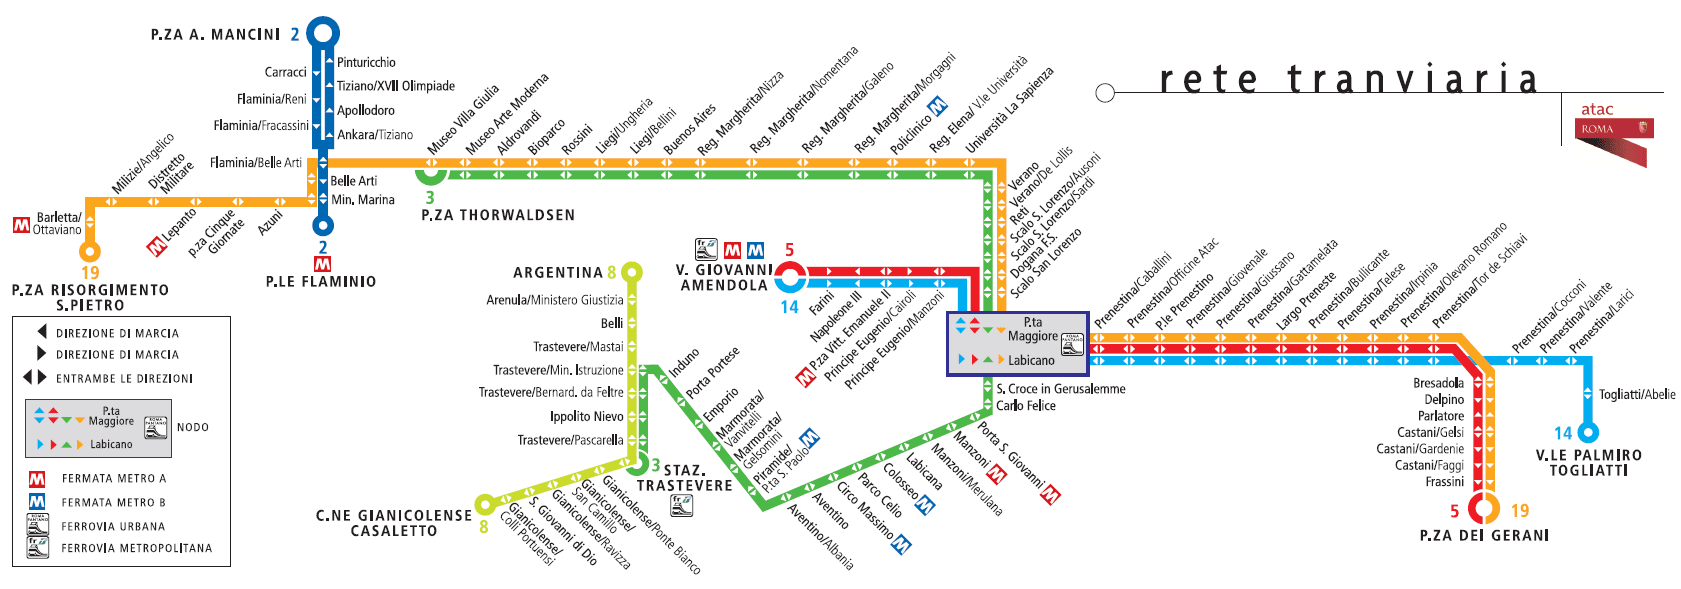 Amendola Italy Map.Rome Trams Lines Hours Fares And Map Of The Tram Network In Rome